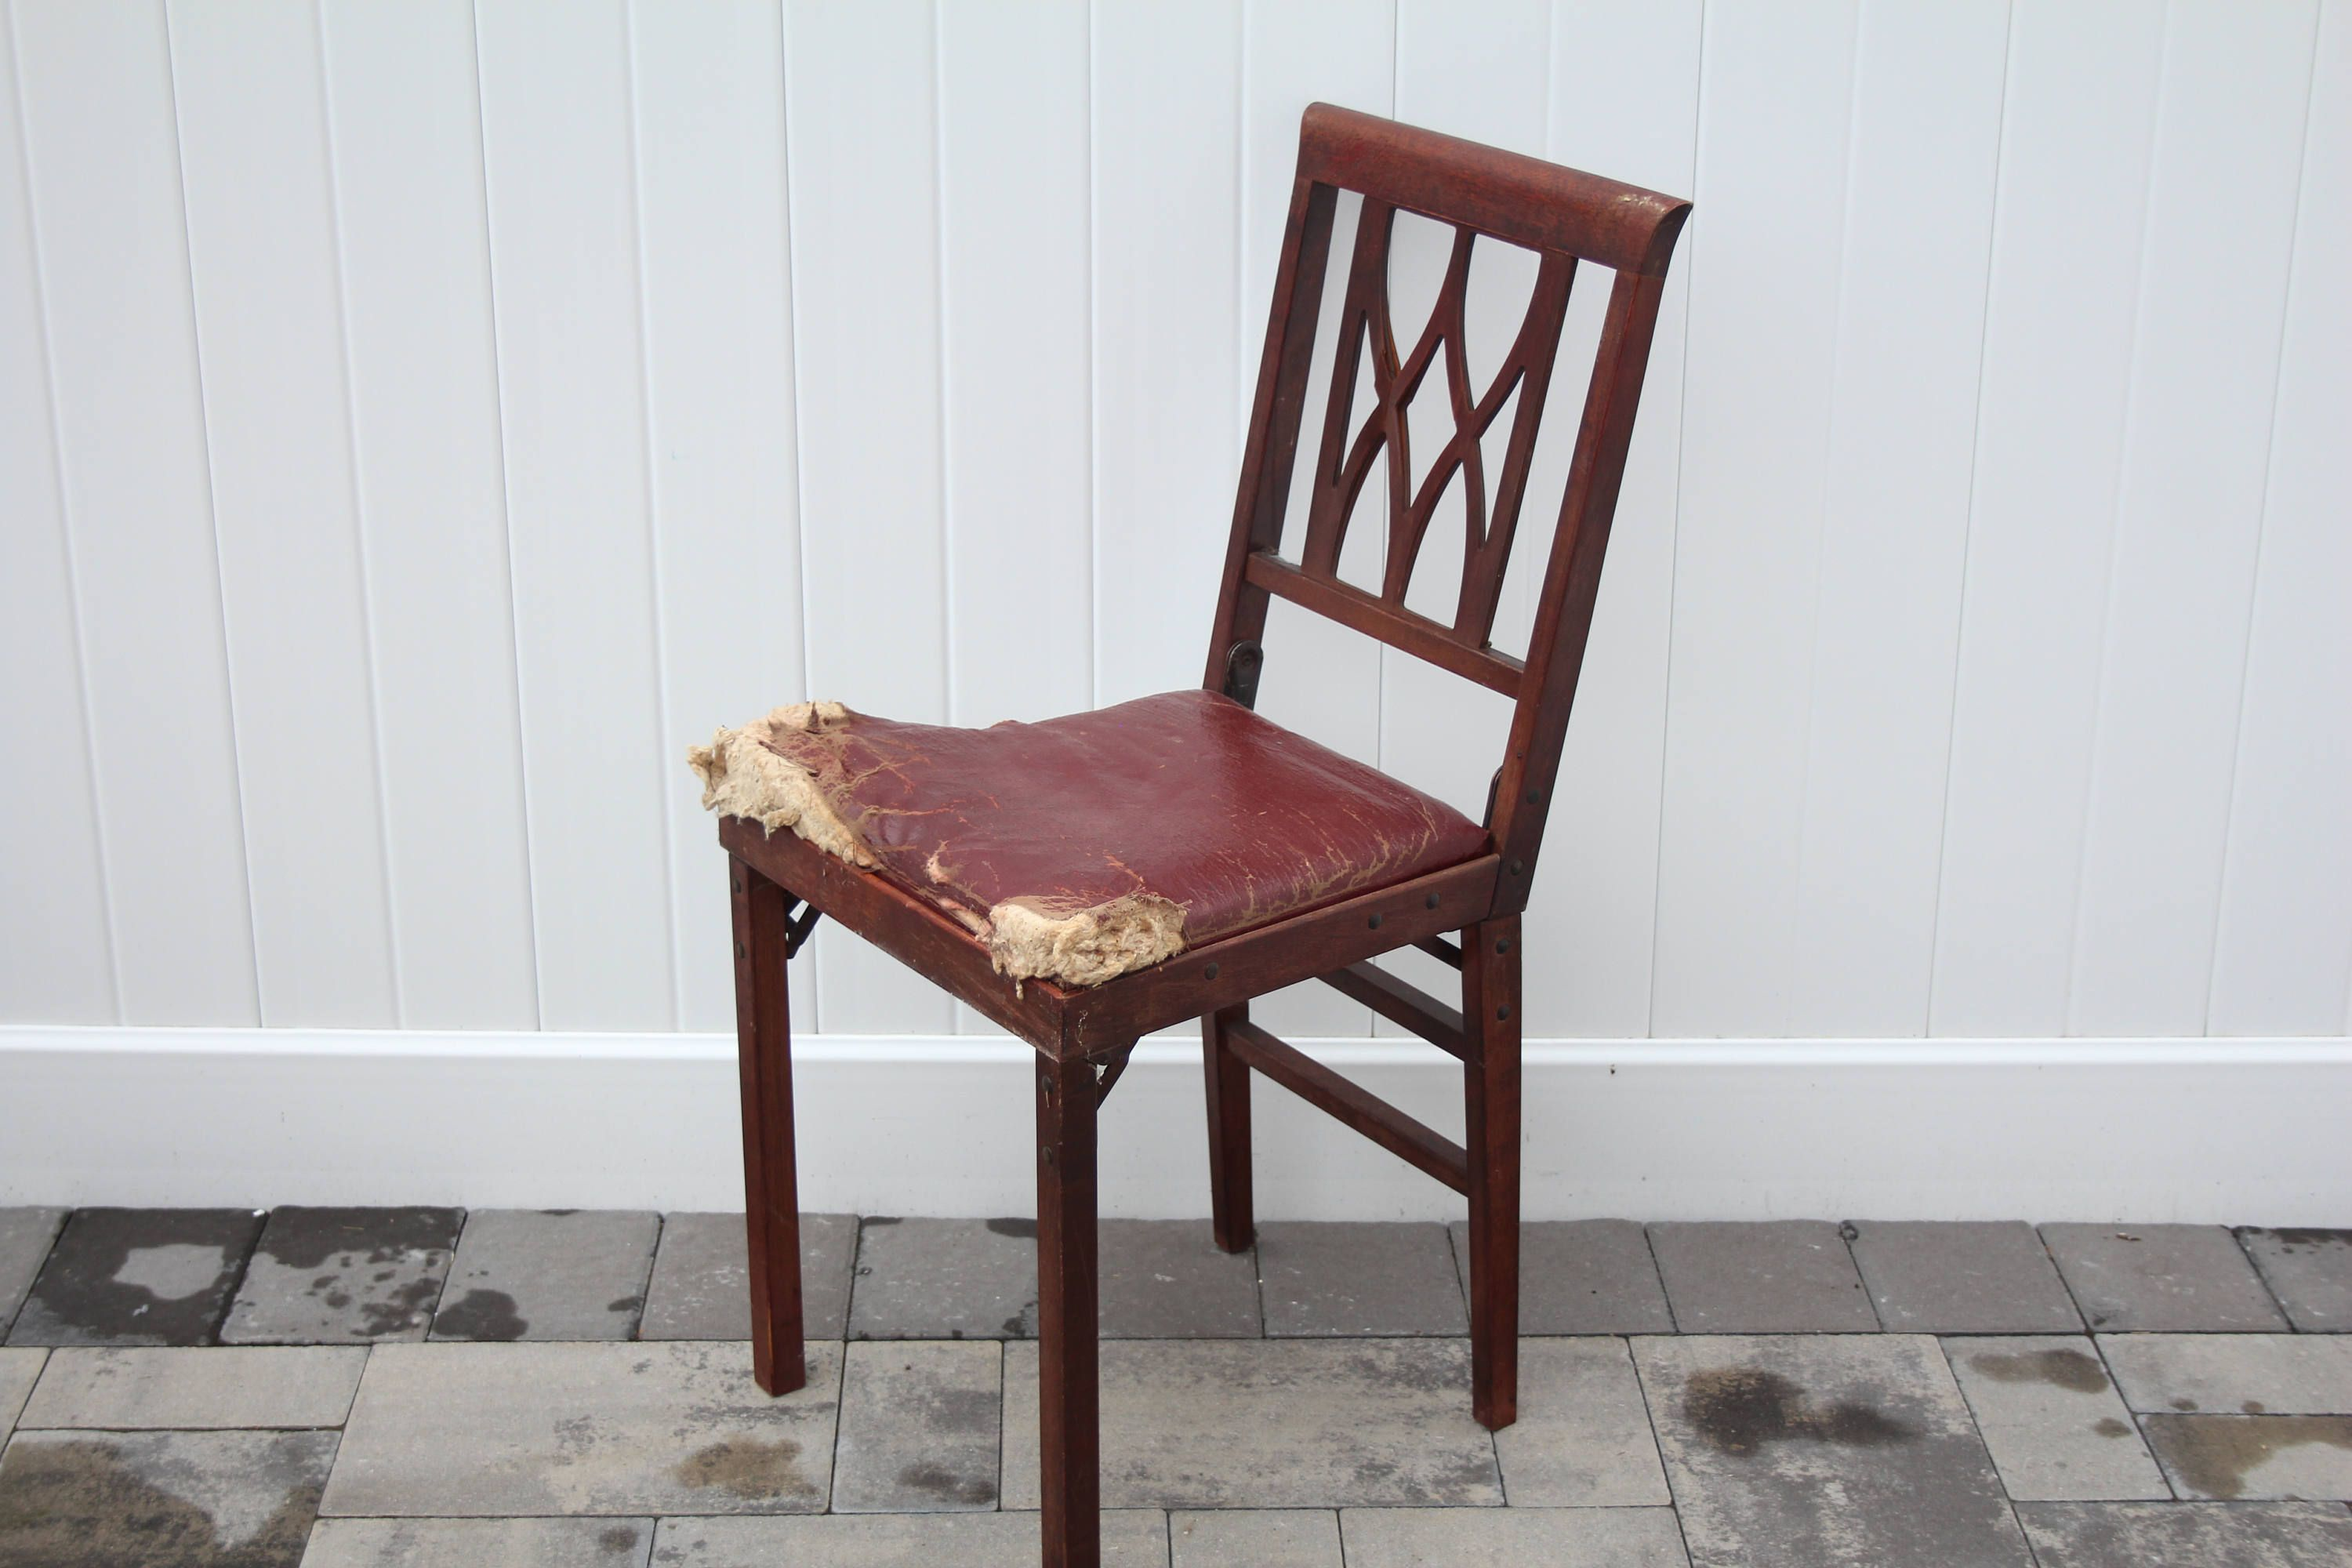 Vintage thonet style cafe chairs with stenciled seats - Vintage Leg O Matic Chair Burgundy Vinyl Seat Cushion Wood Frame Compact Folding Chair